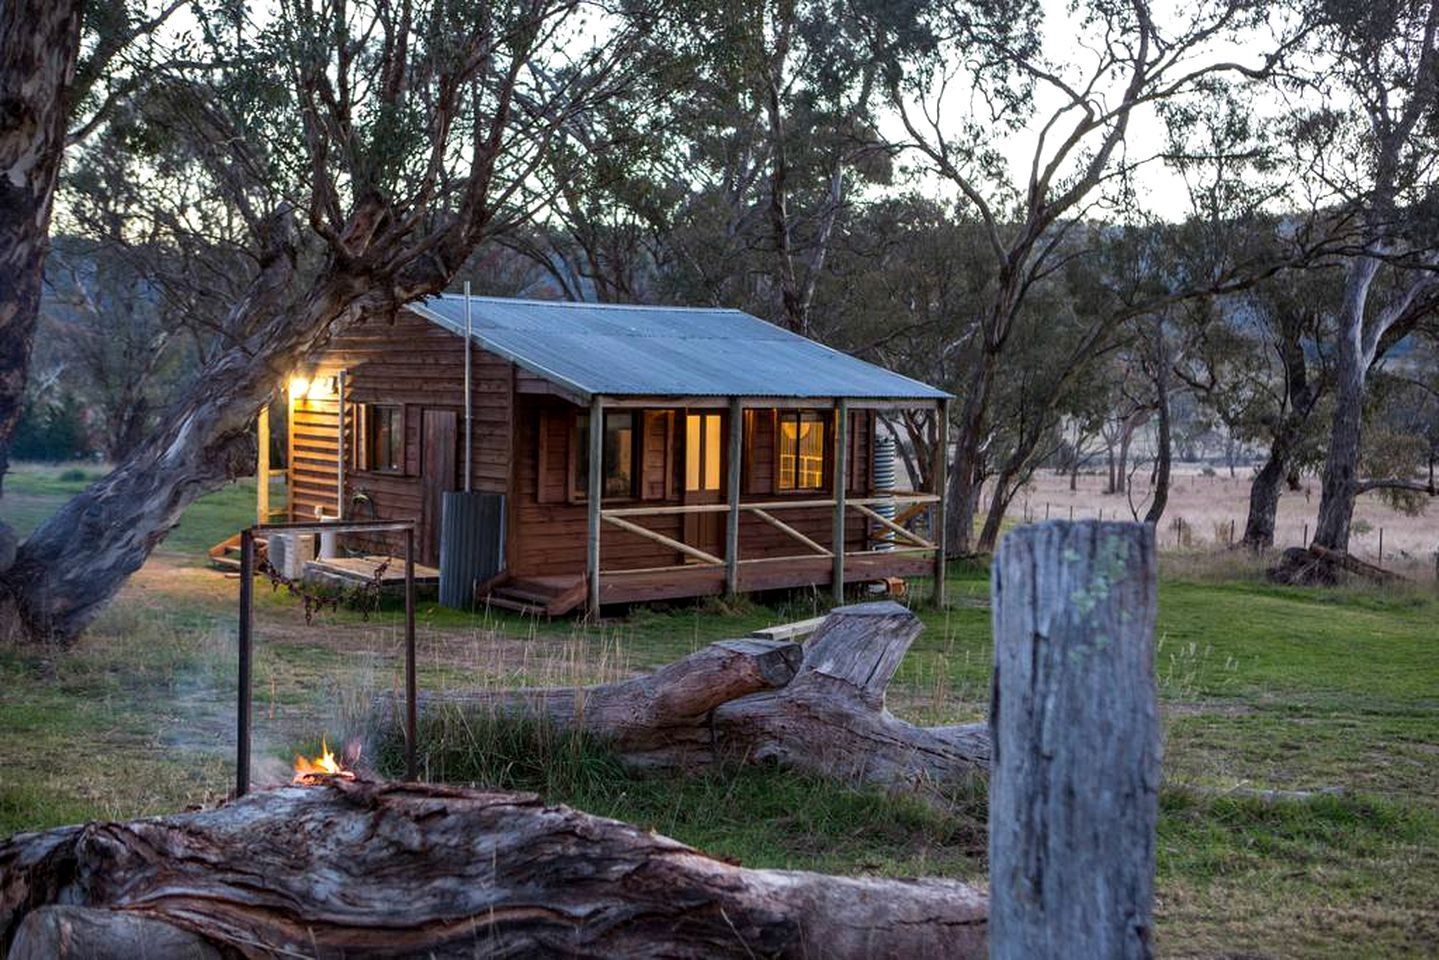 Cabins (Williamsdale, New South Wales, Australia)